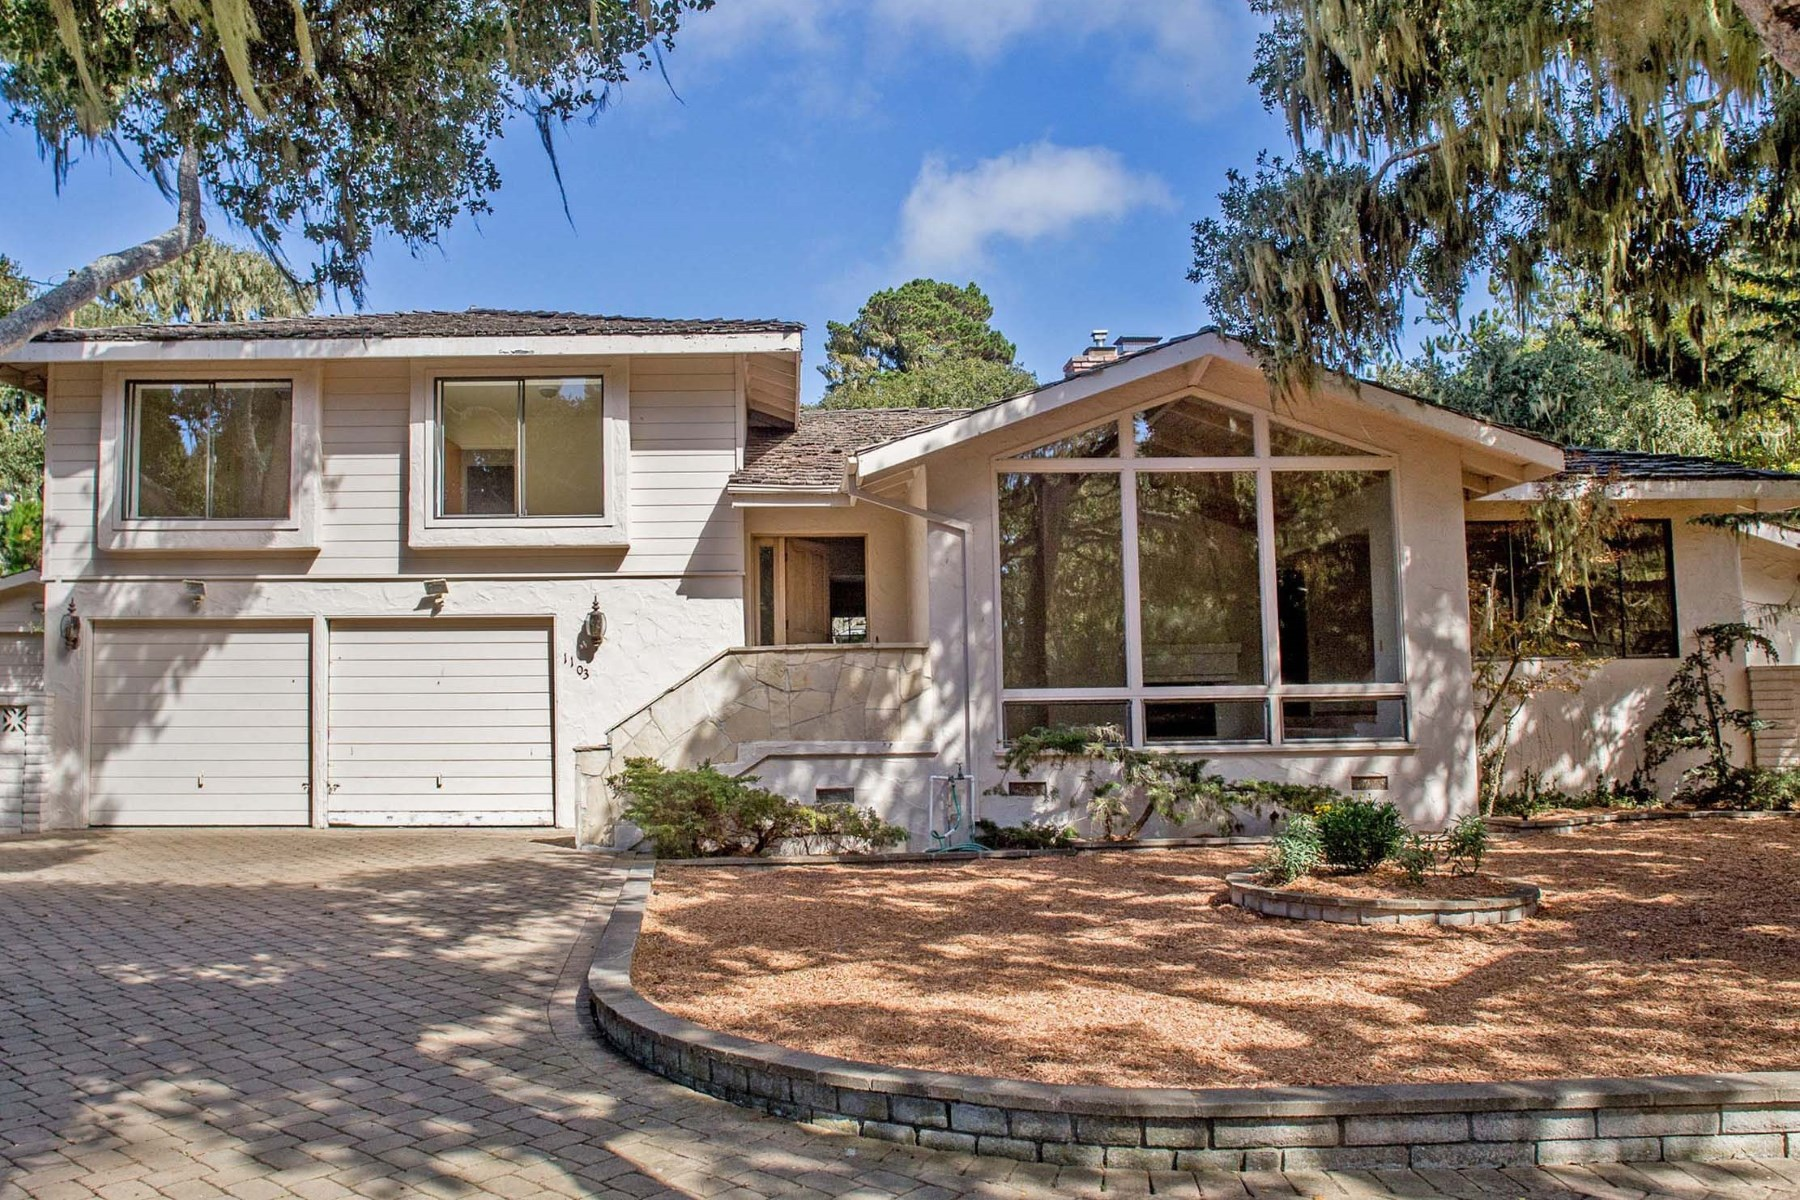 Single Family Home for Sale at Lovely Pebble Beach Home 1103 Mariners Way Pebble Beach, California 93953 United States